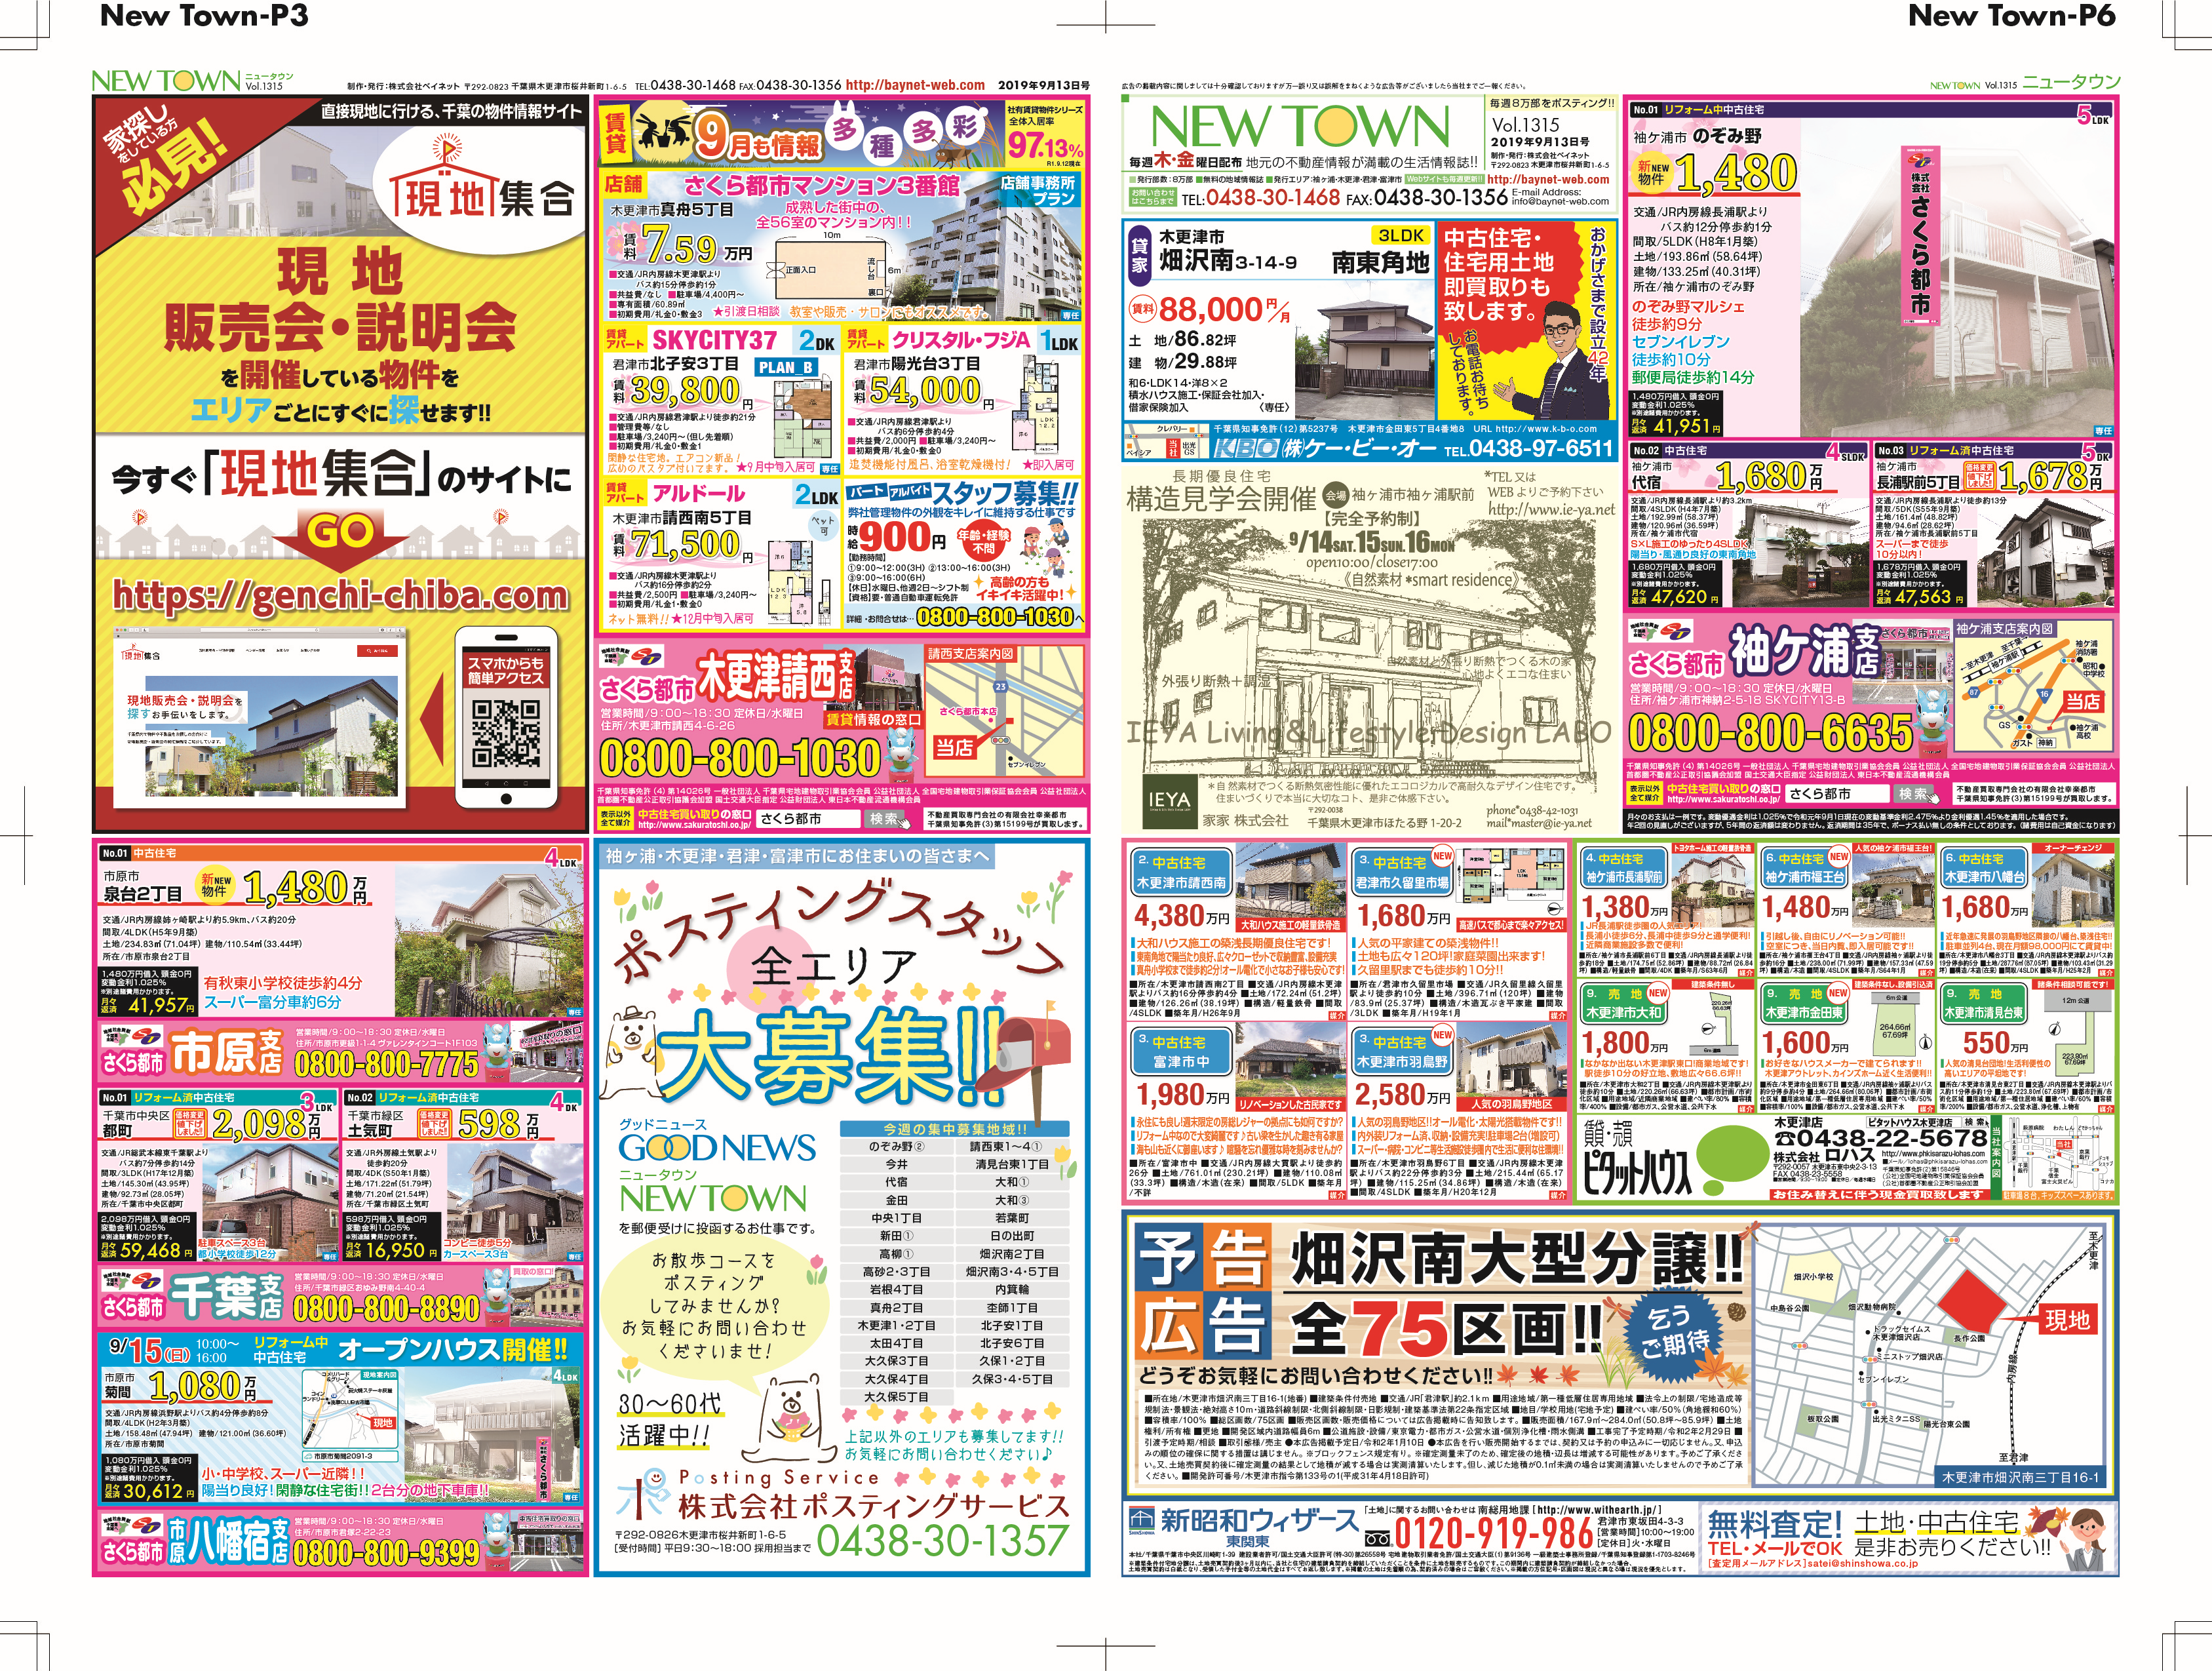 NEW TOWN 不動産合同チラシに掲載されました